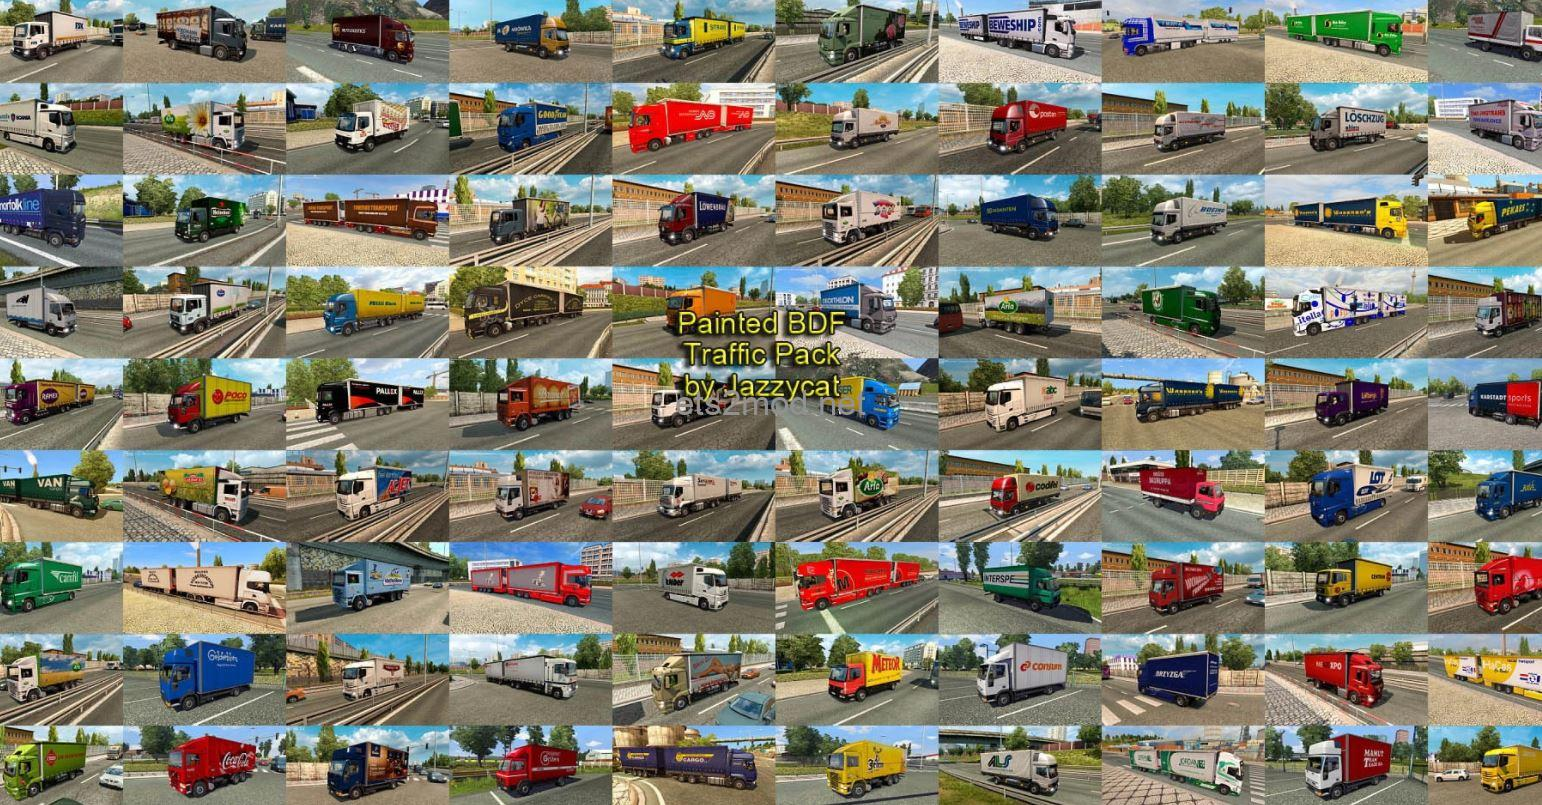 painted-bdf-traffic-pack-by-jazzycat-v10-7-ets2-mod